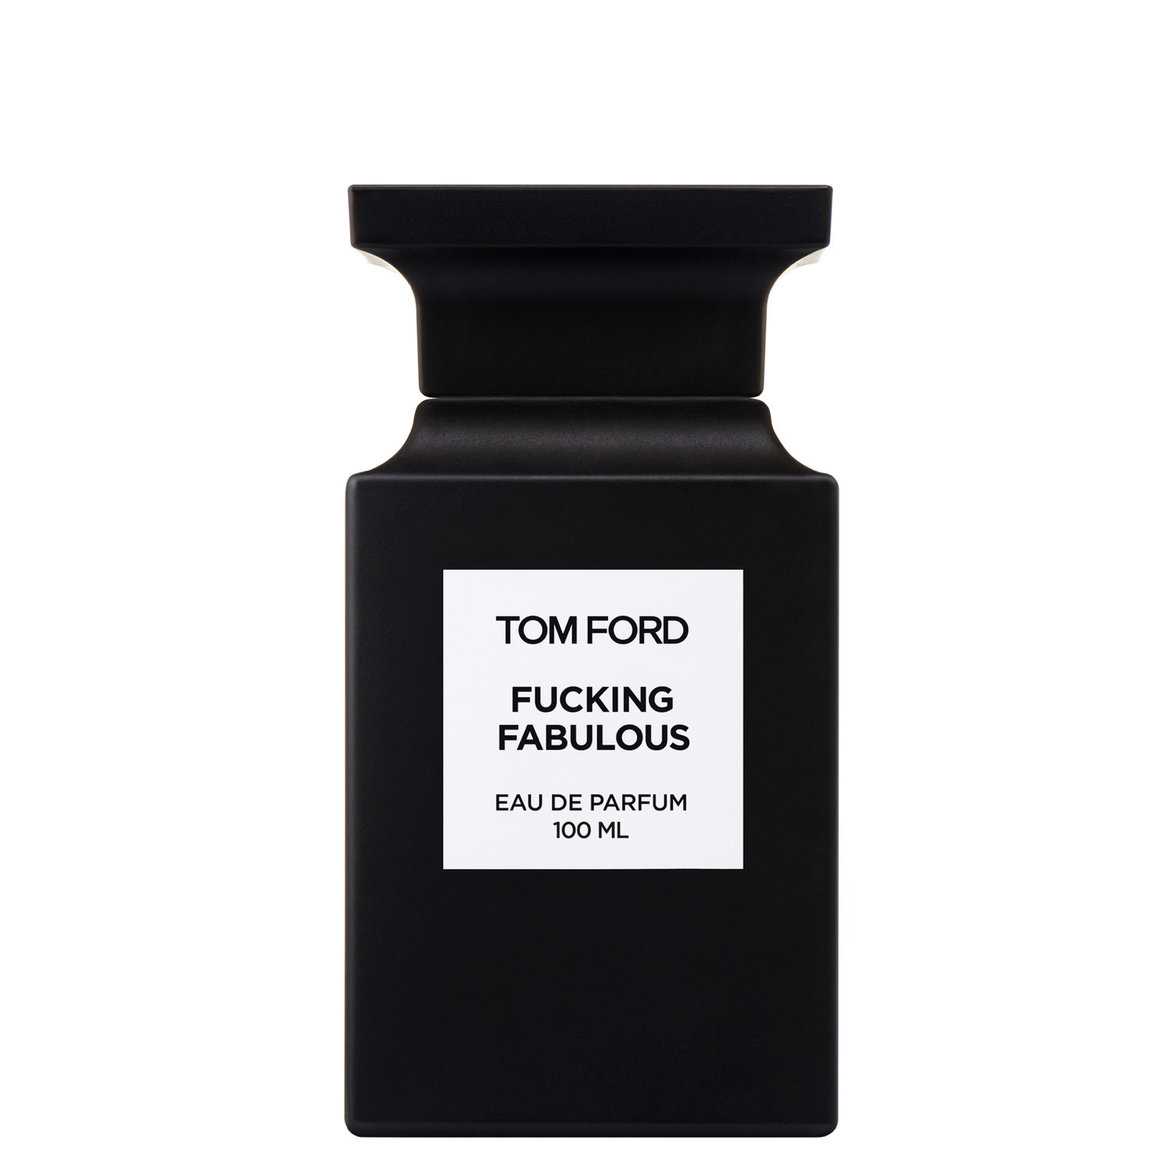 TOM FORD Fucking Fabulous 100 ml product smear.